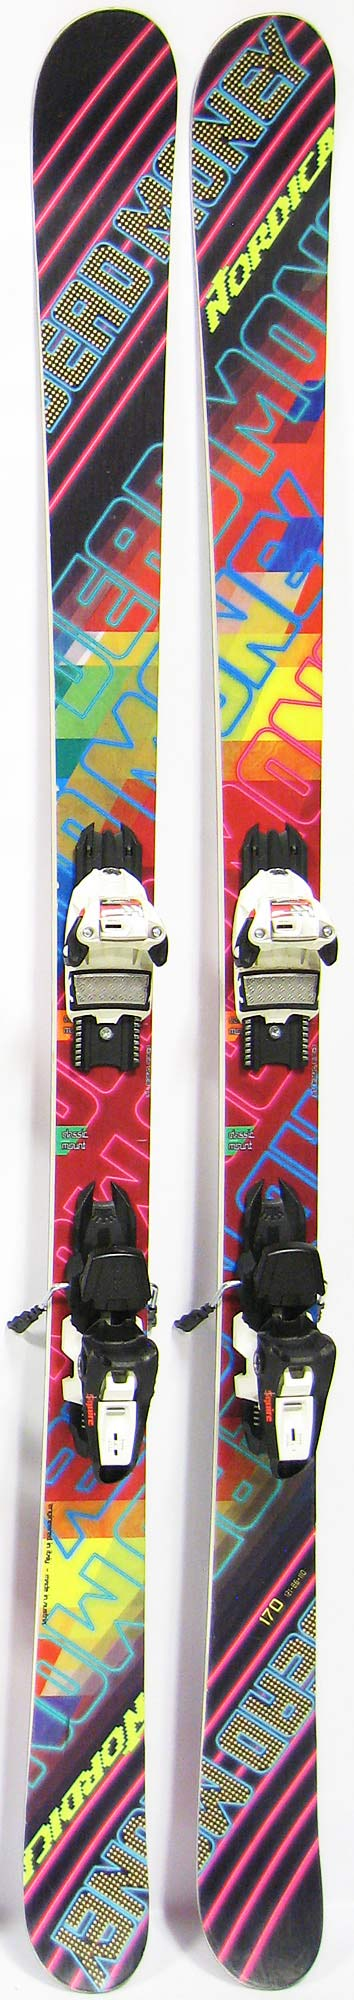 Topsheets of 2013 Nordica Dead Money Skis For Sale